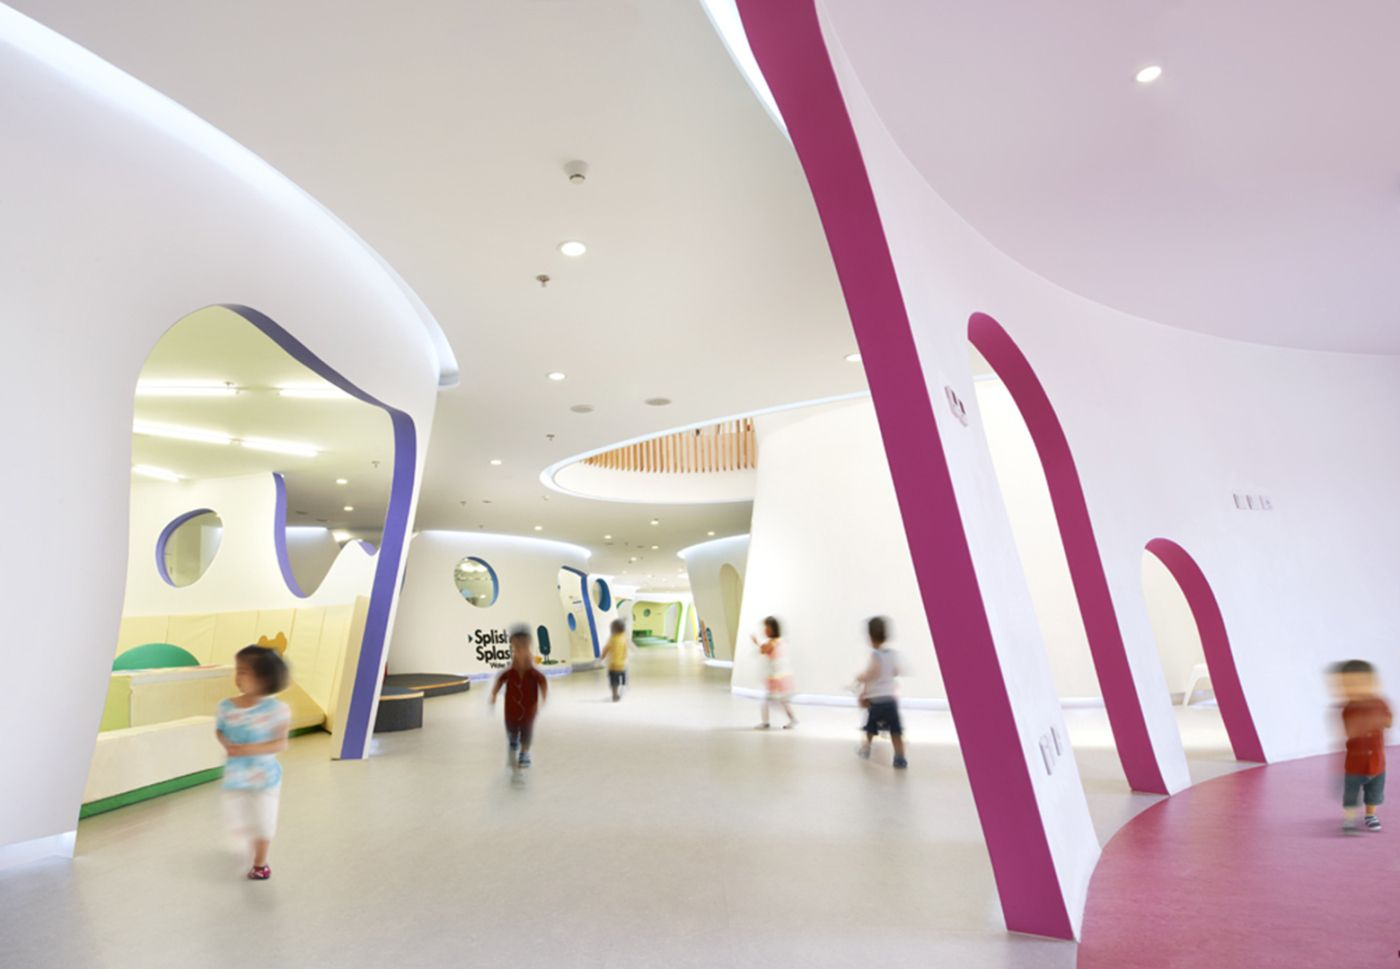 This vibrant & colorful #school is perfect to inspire the little guests, where they could have #fun while learning.  'Family Box' #interior #design by SAKO Architects in Pechino.